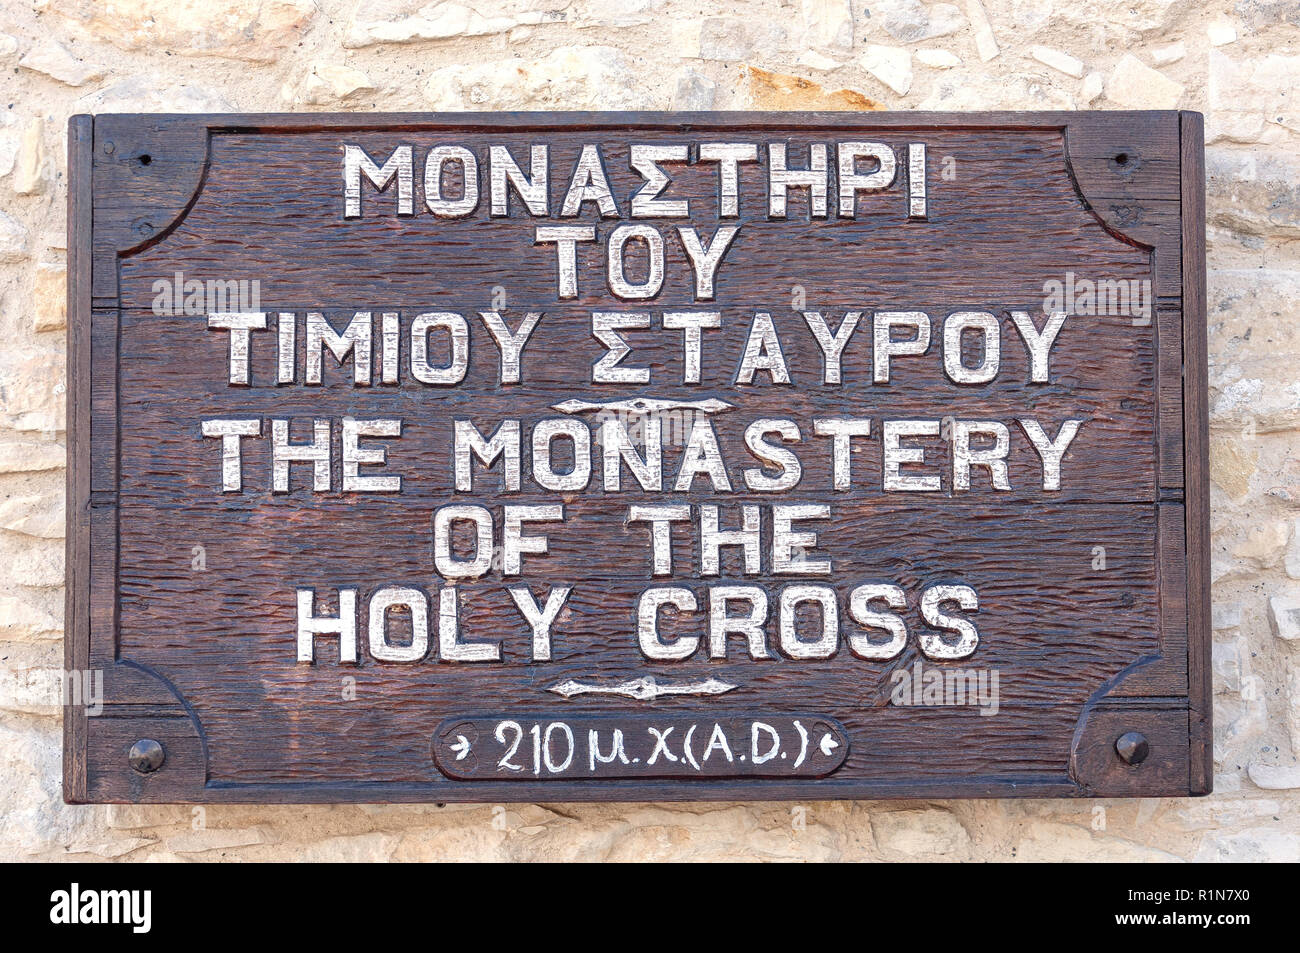 The Monastery of The Holy Cross (Timios Stavros) entrance sign, Omodos (Troodos Mountains), Limassol District, Republic of Cyprus - Stock Image